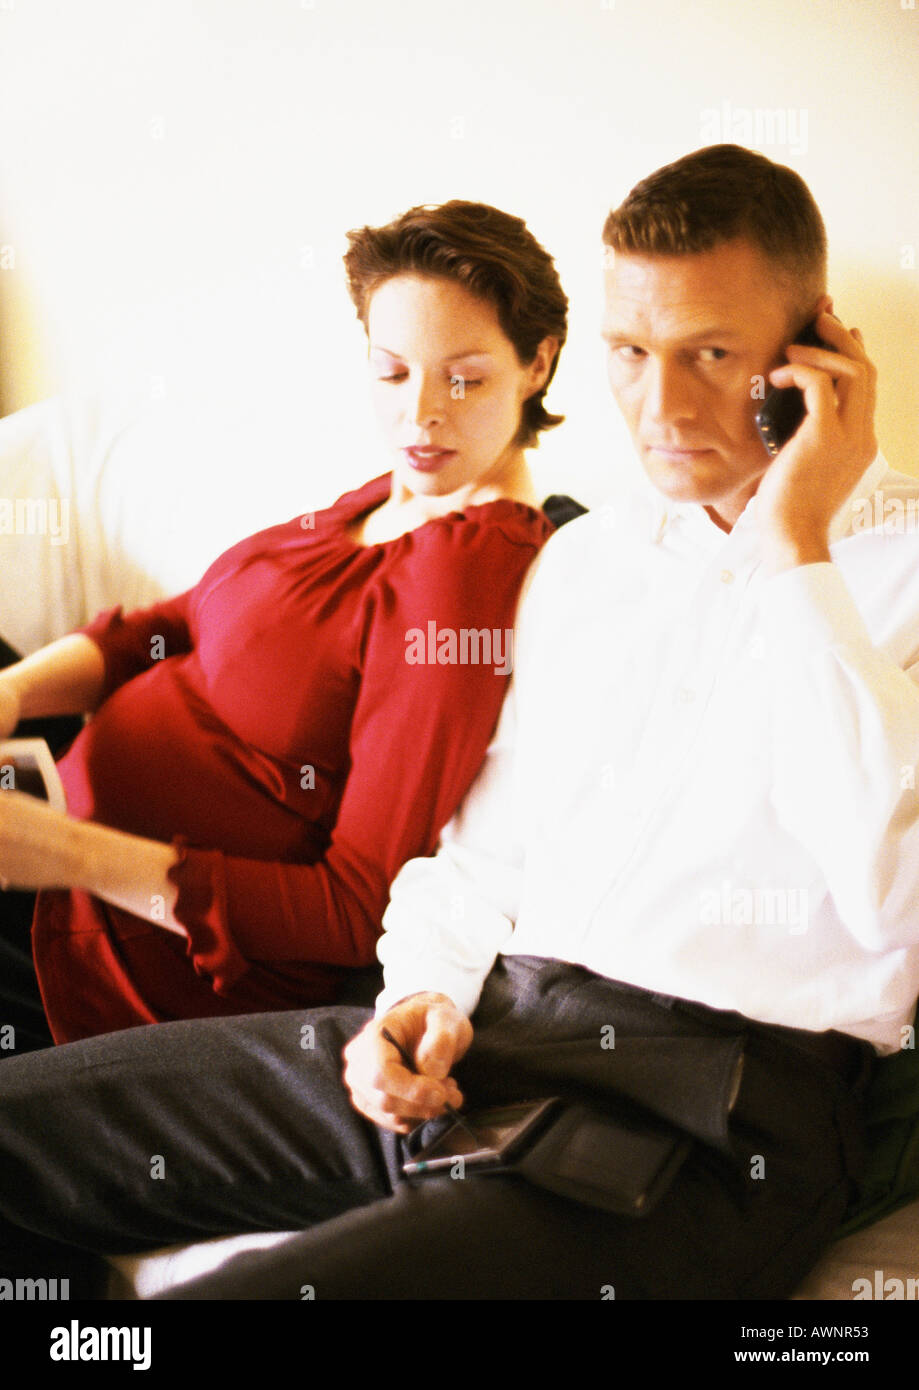 Pregnant woman sitting with man using cell phone - Stock Image